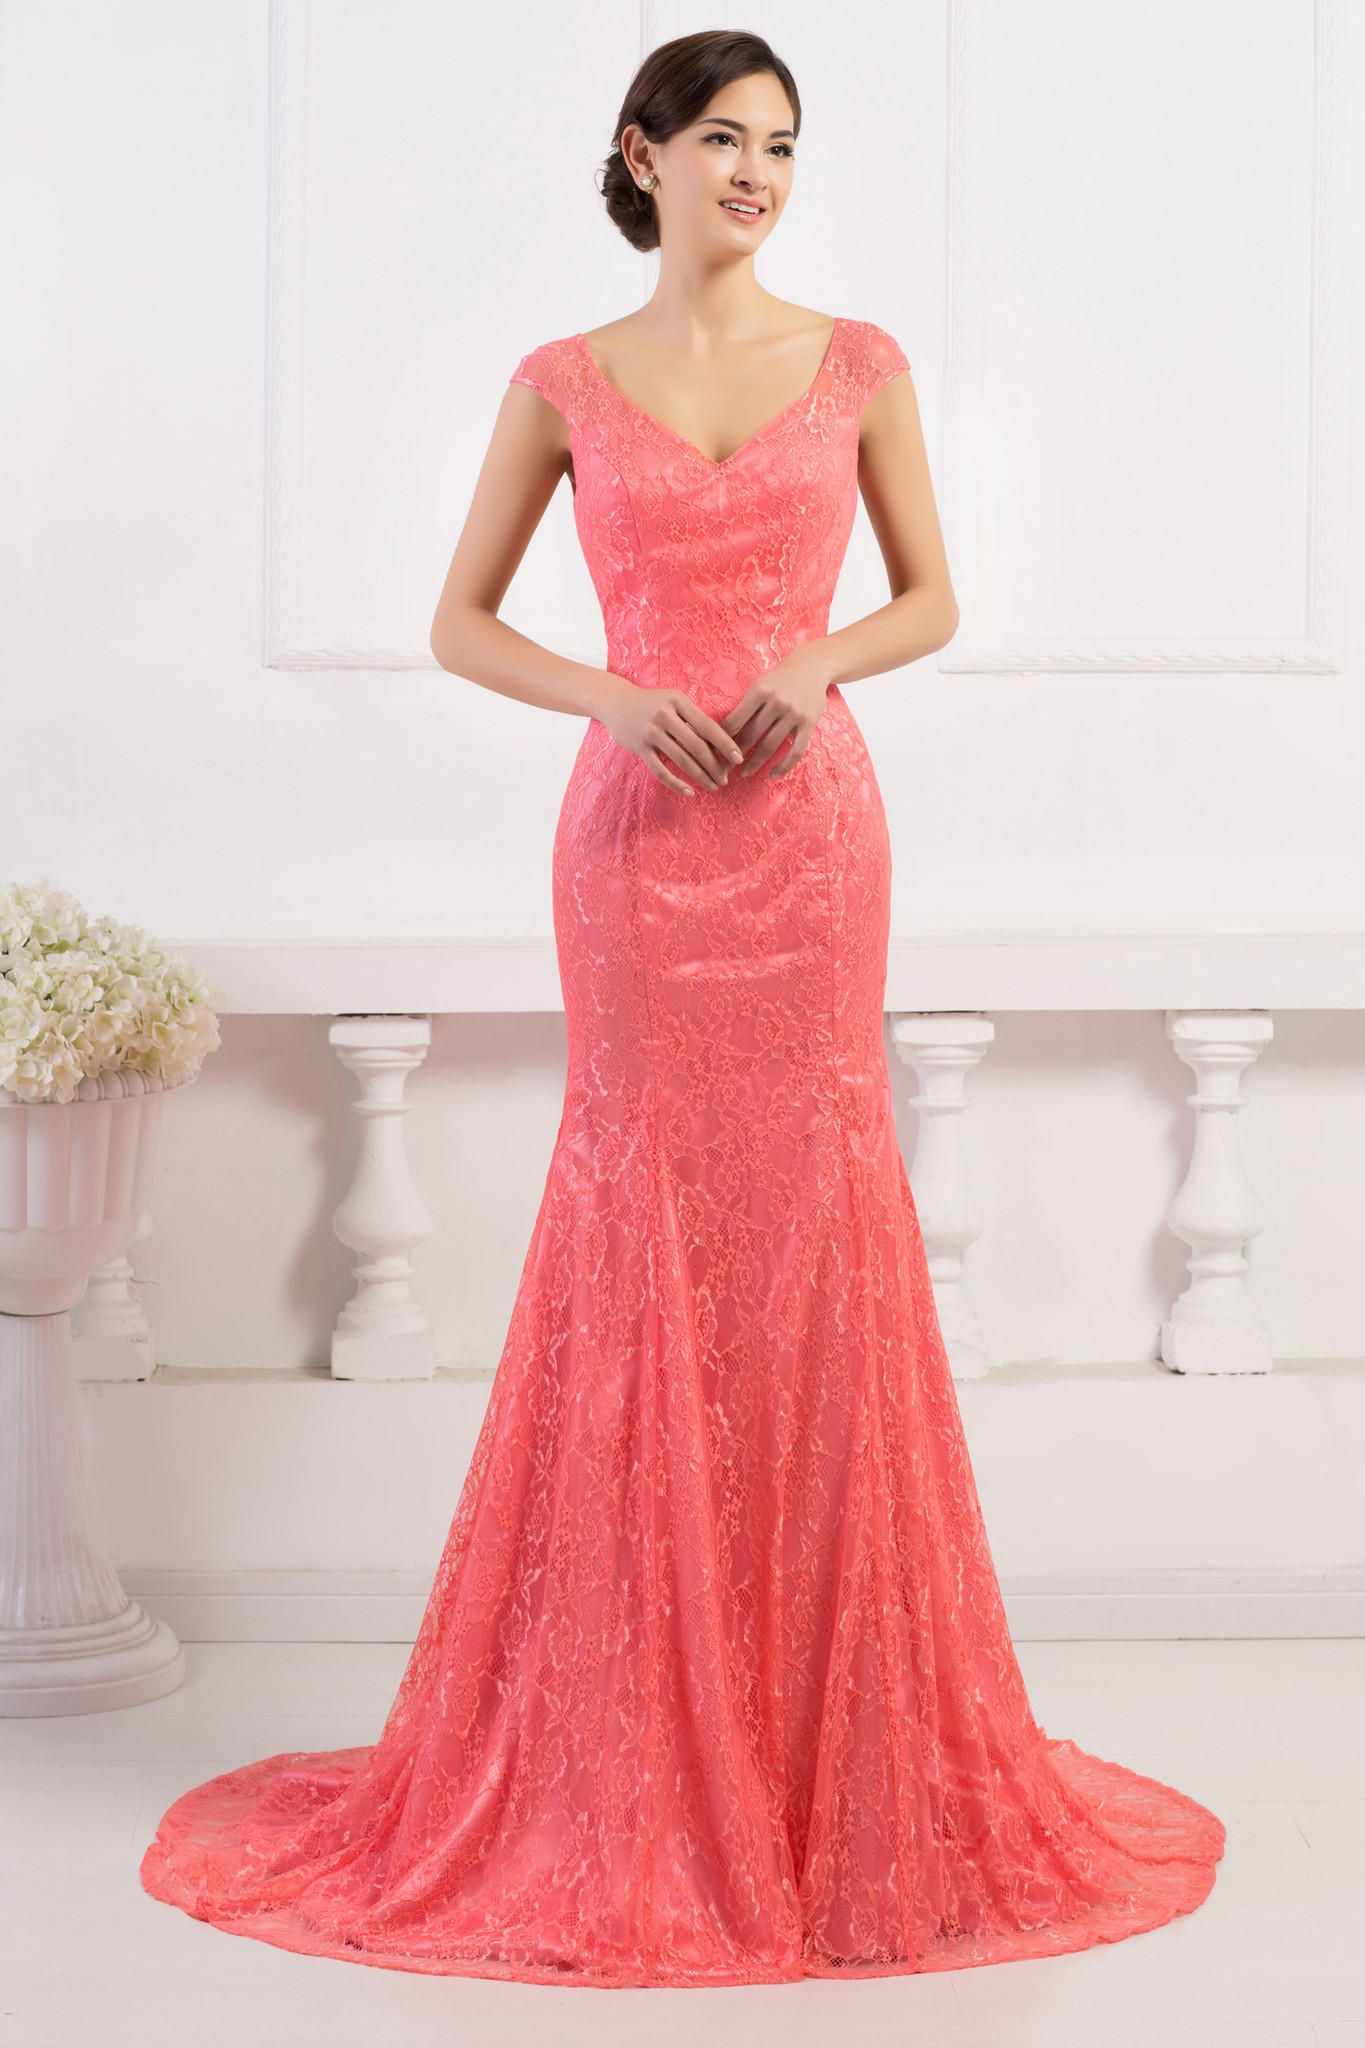 Watermelon red vneck backless mermaid lace evening dress dress me